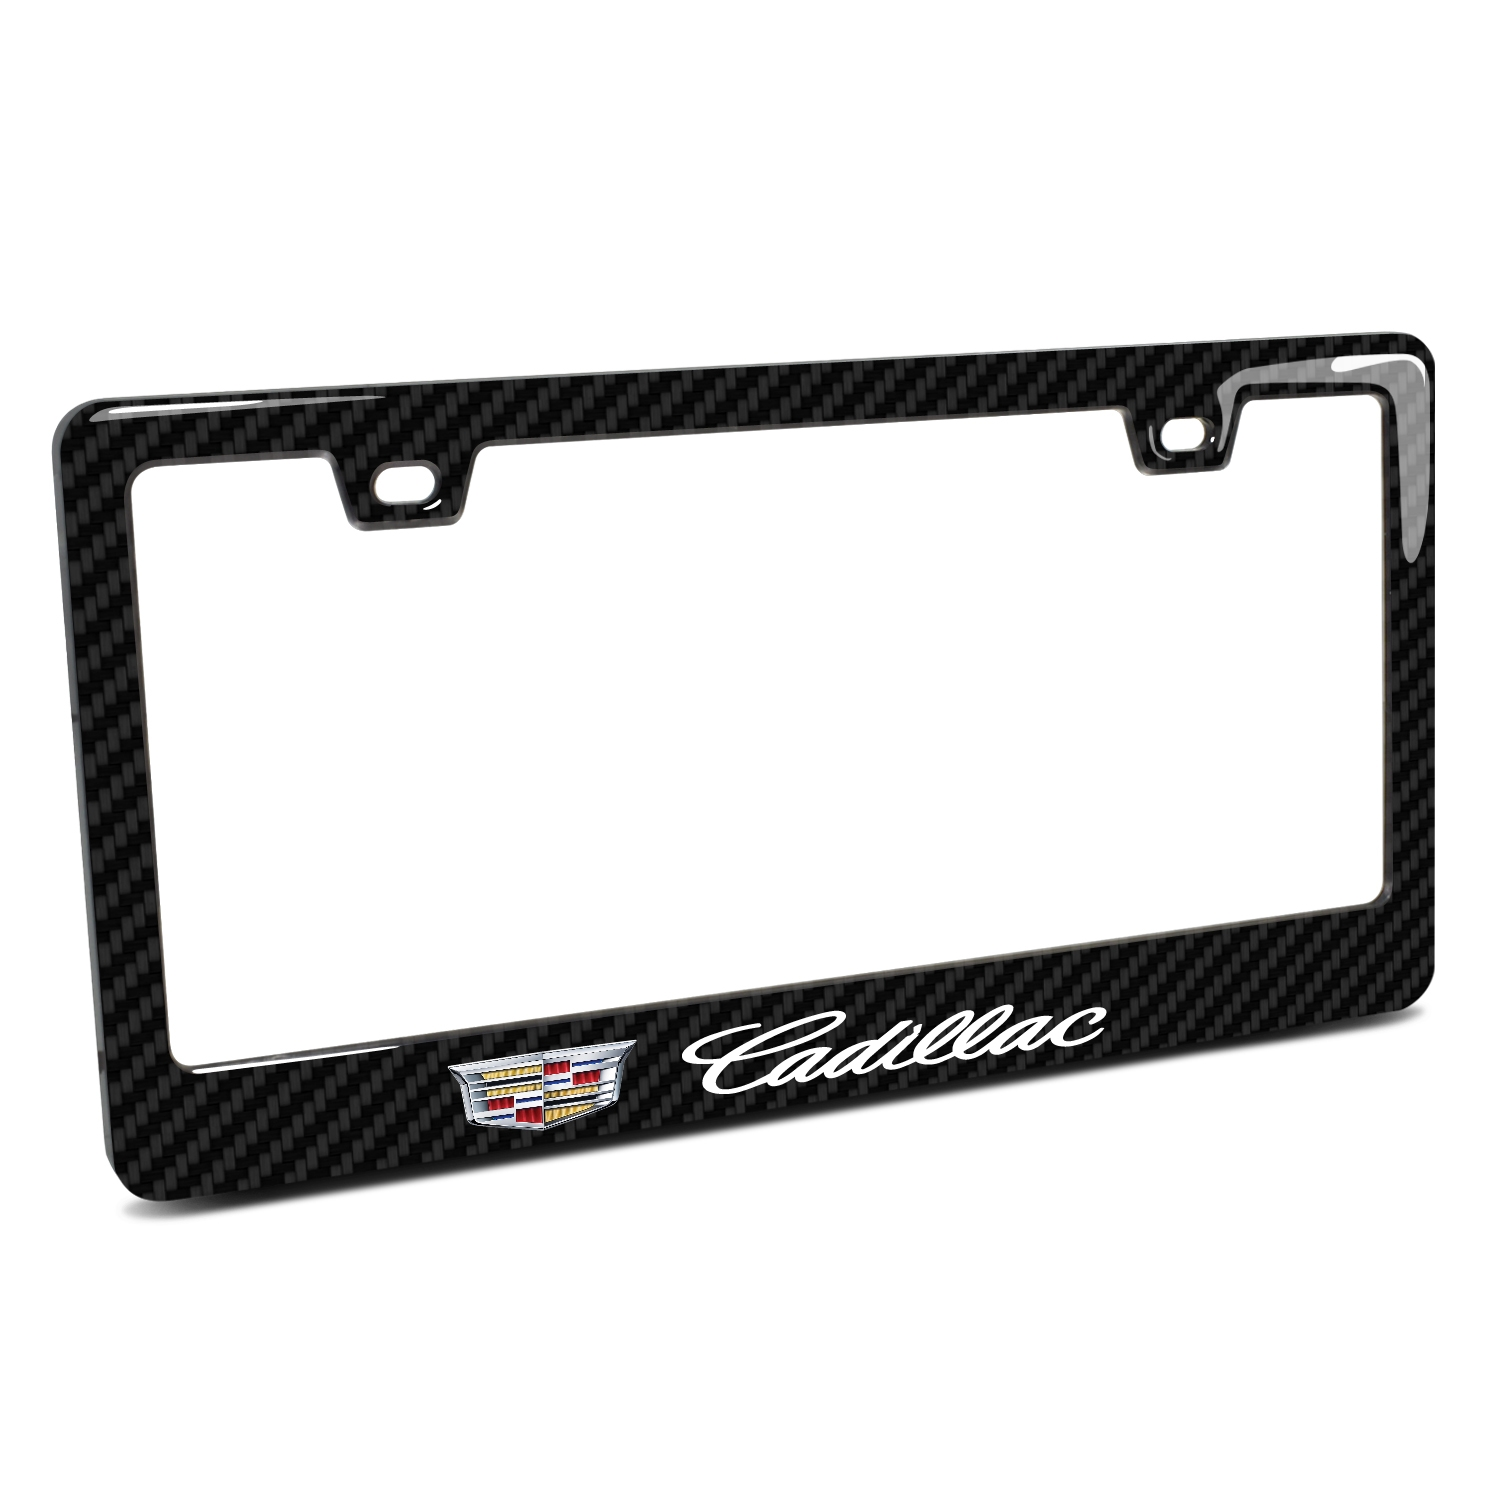 Cadillac Crest Logo in 3D on Real 3K Carbon Fiber Finish ABS Plastic License Plate Frame